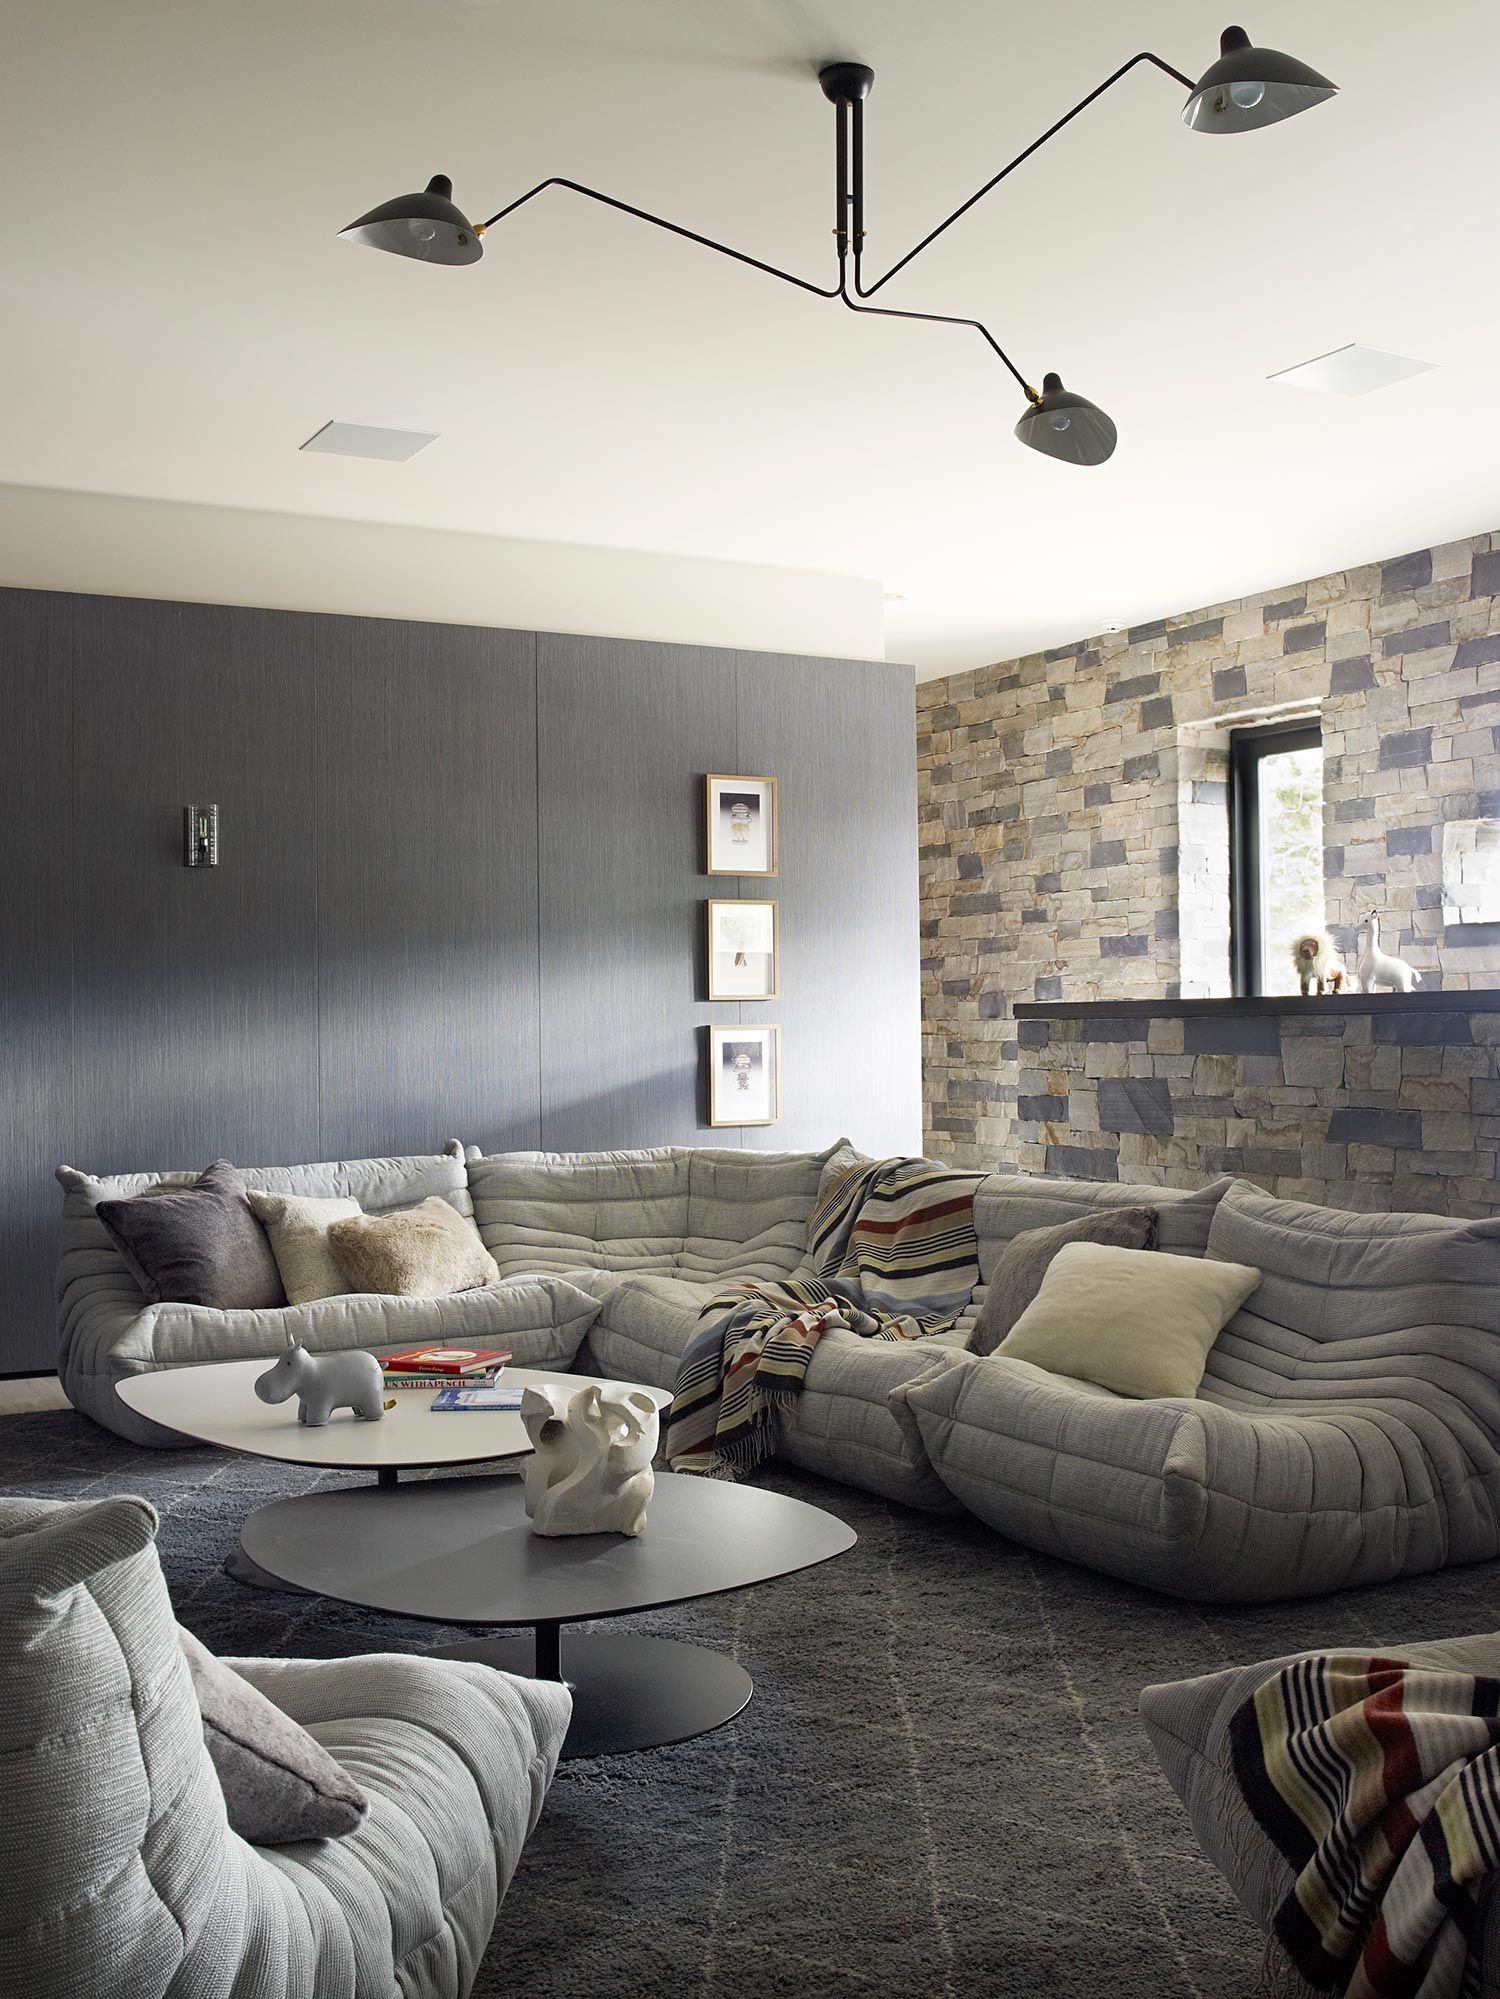 Prj Martis Camp Jamie Bush Co With Images Modern Family Rooms Room Luxury Living Room